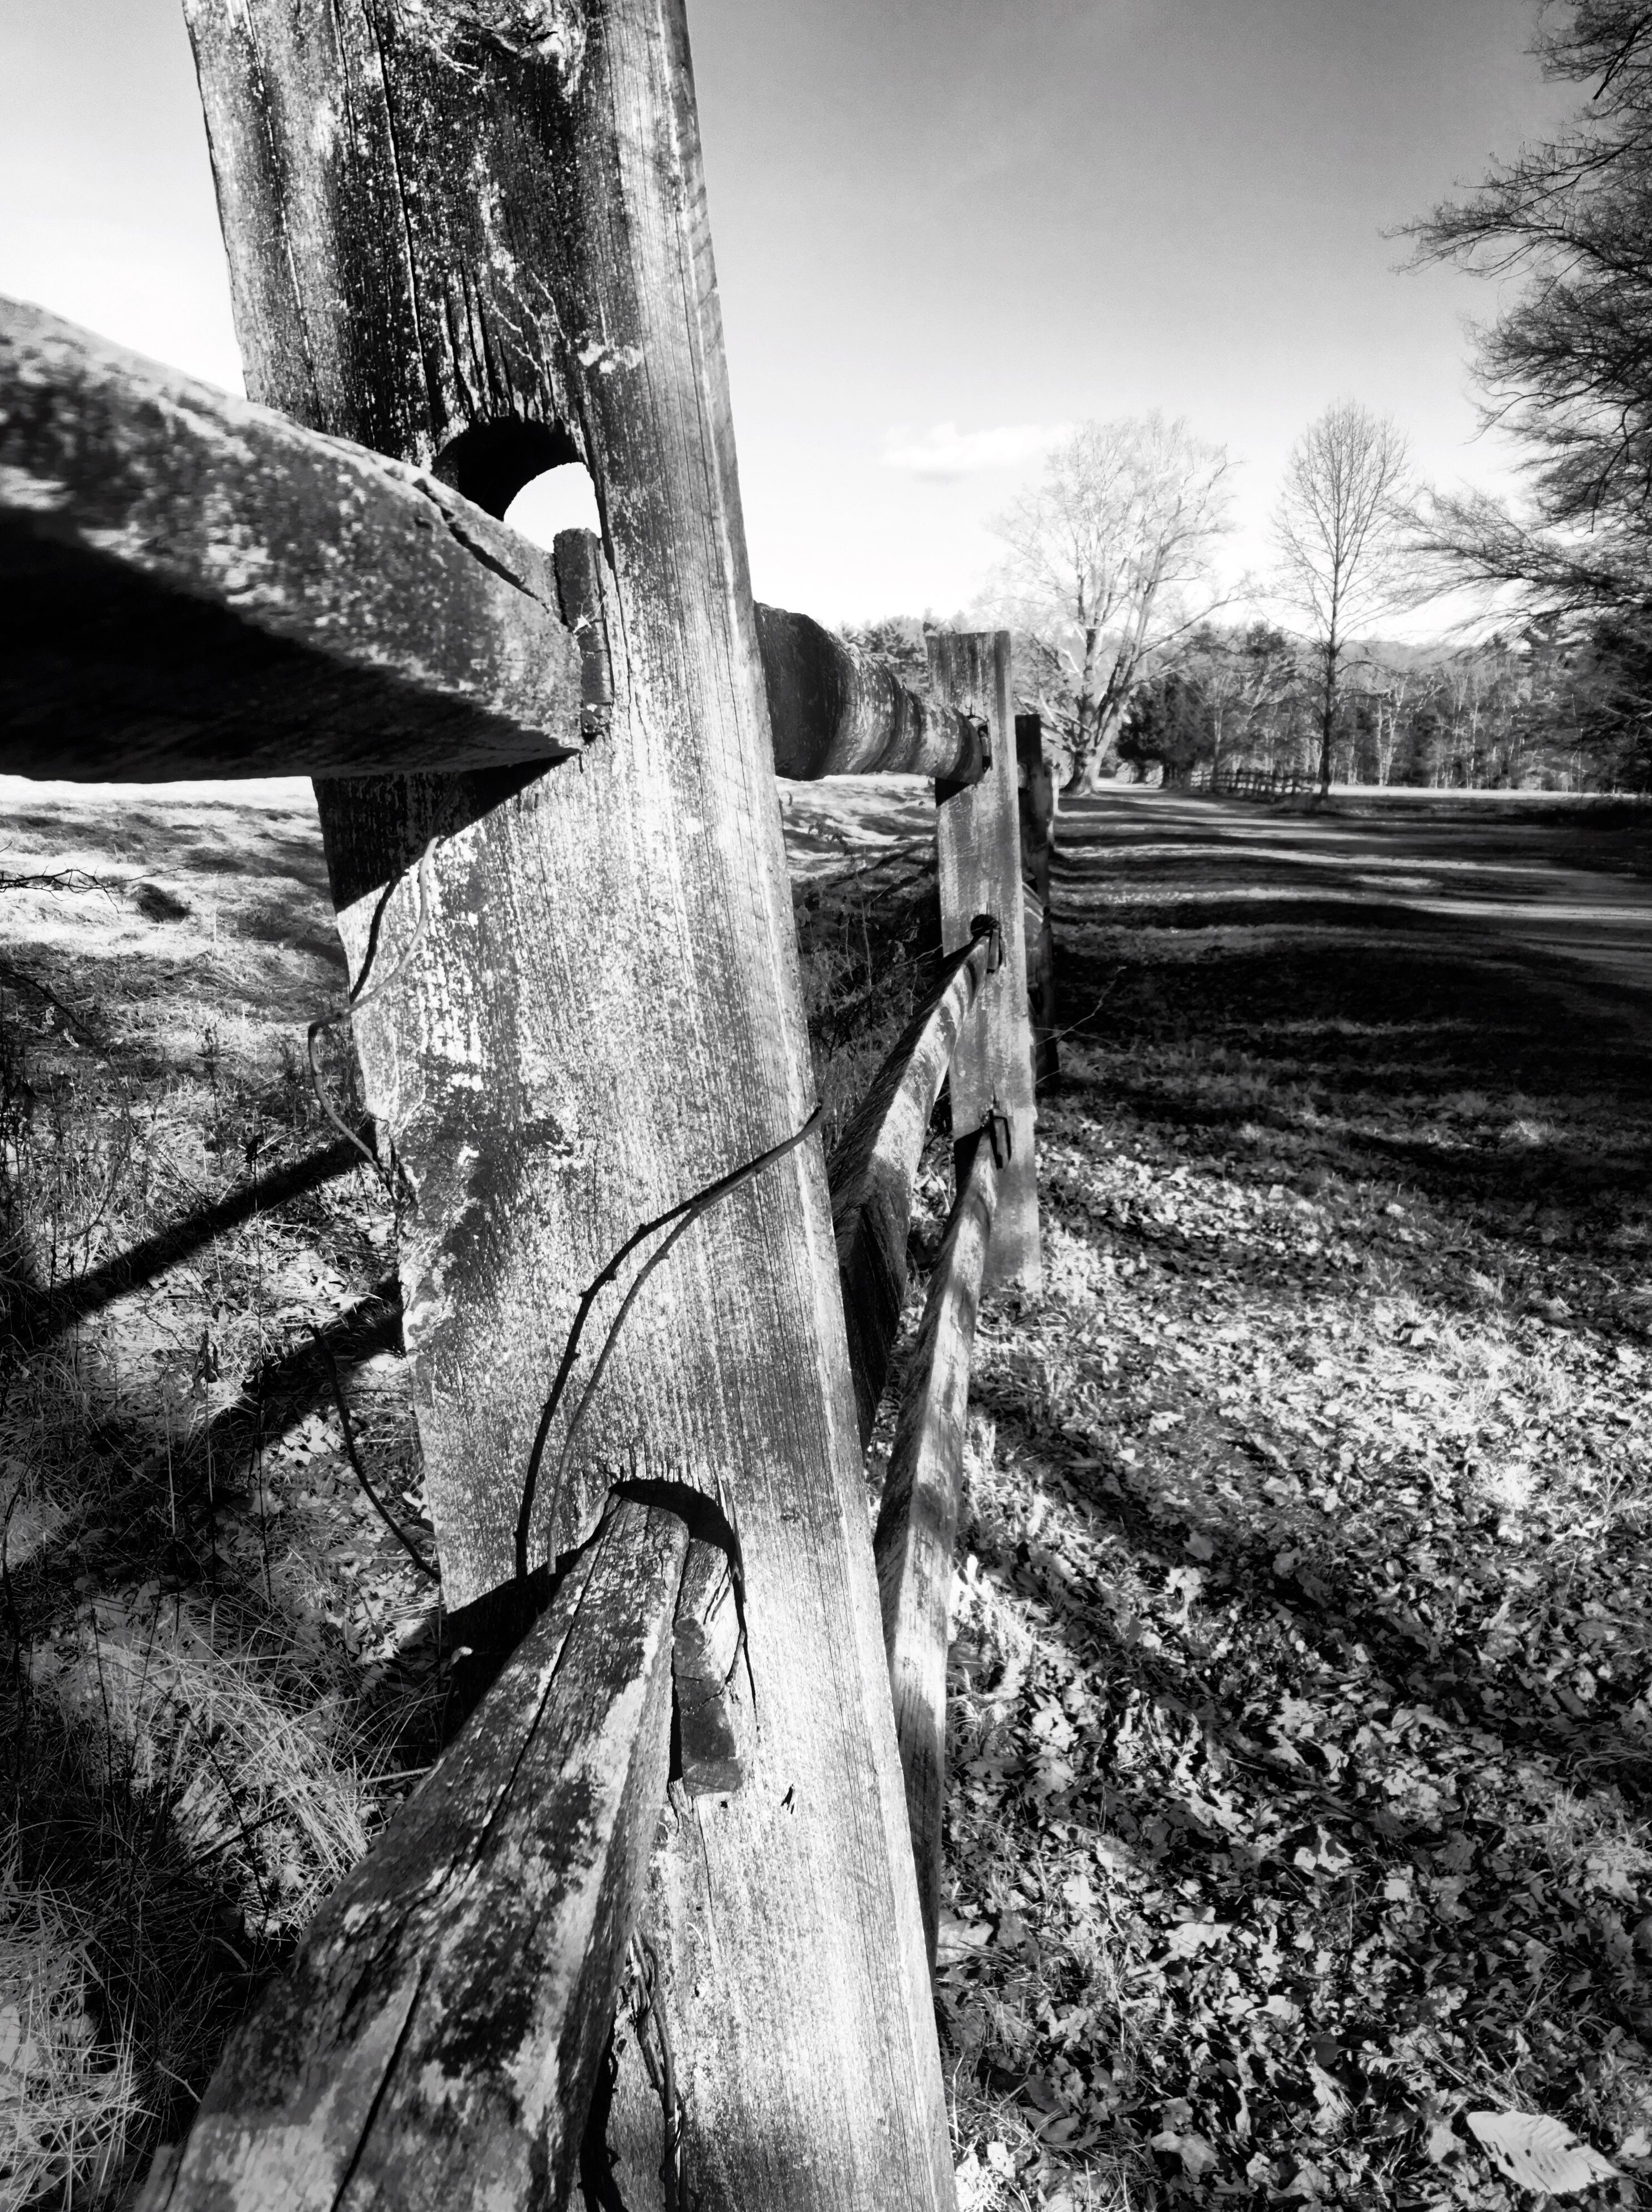 wood - material, tree, field, wooden, sky, fence, wood, grass, landscape, tree trunk, sunlight, log, tranquility, day, rural scene, nature, outdoors, growth, old, no people